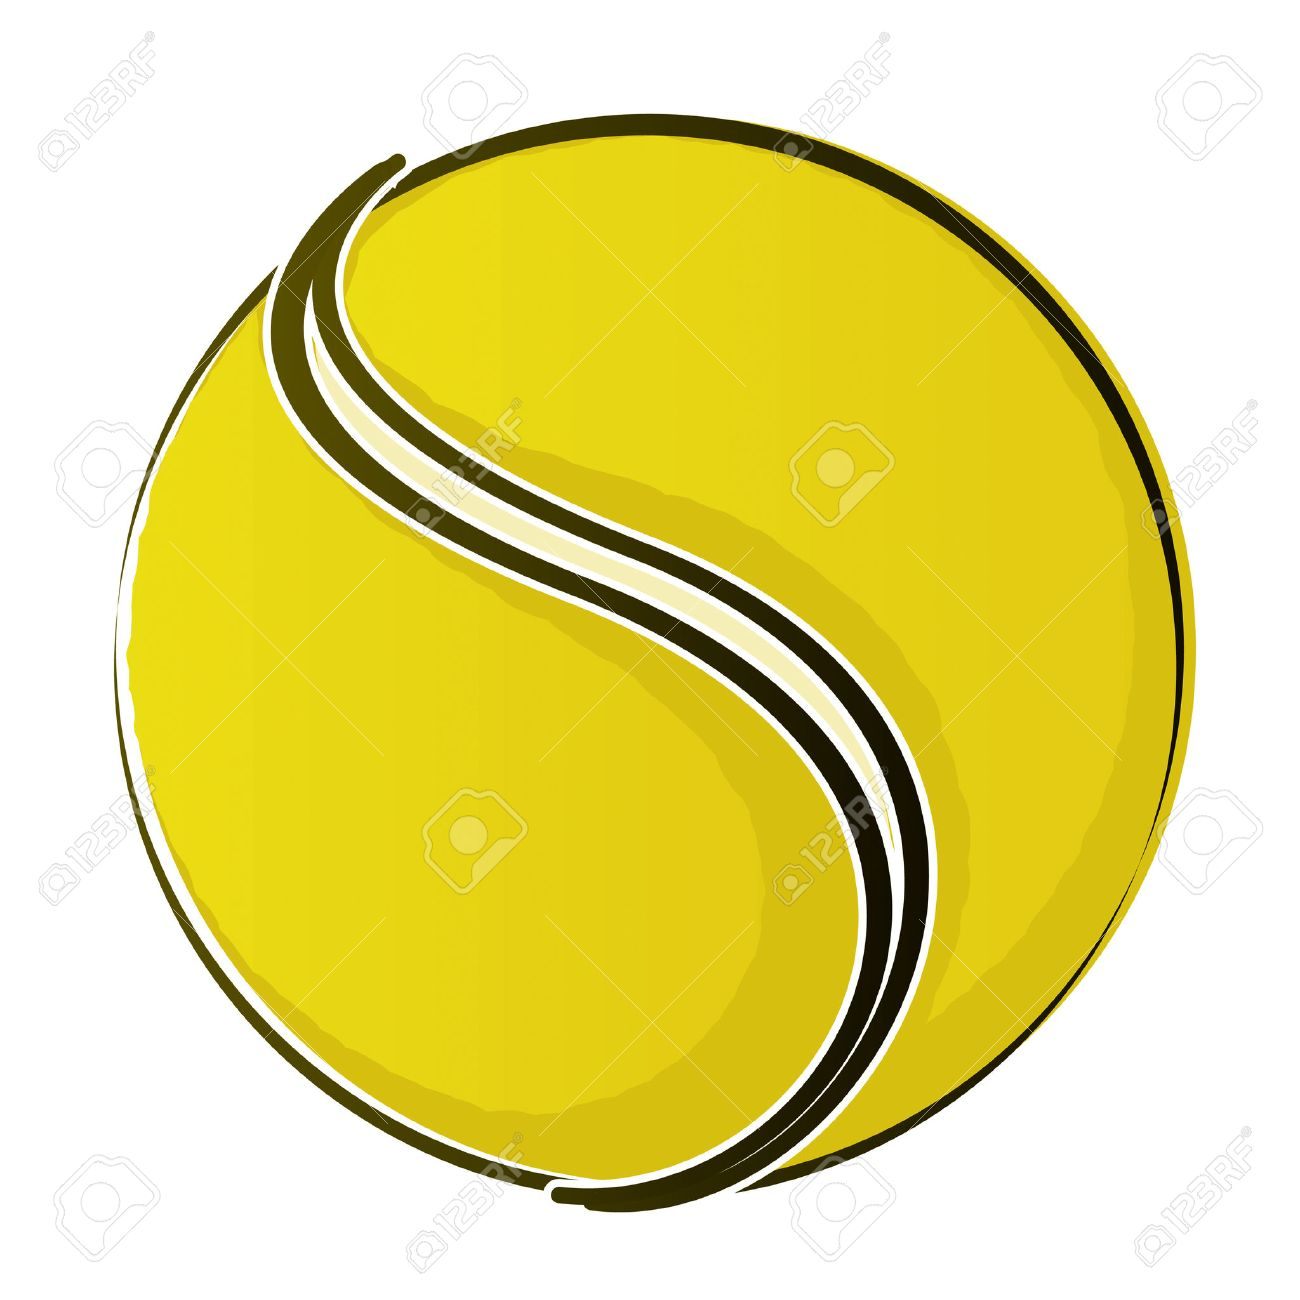 1300x1300 Tennis Ball 2 Drawing Royalty Free Cliparts, Vectors, And Stock